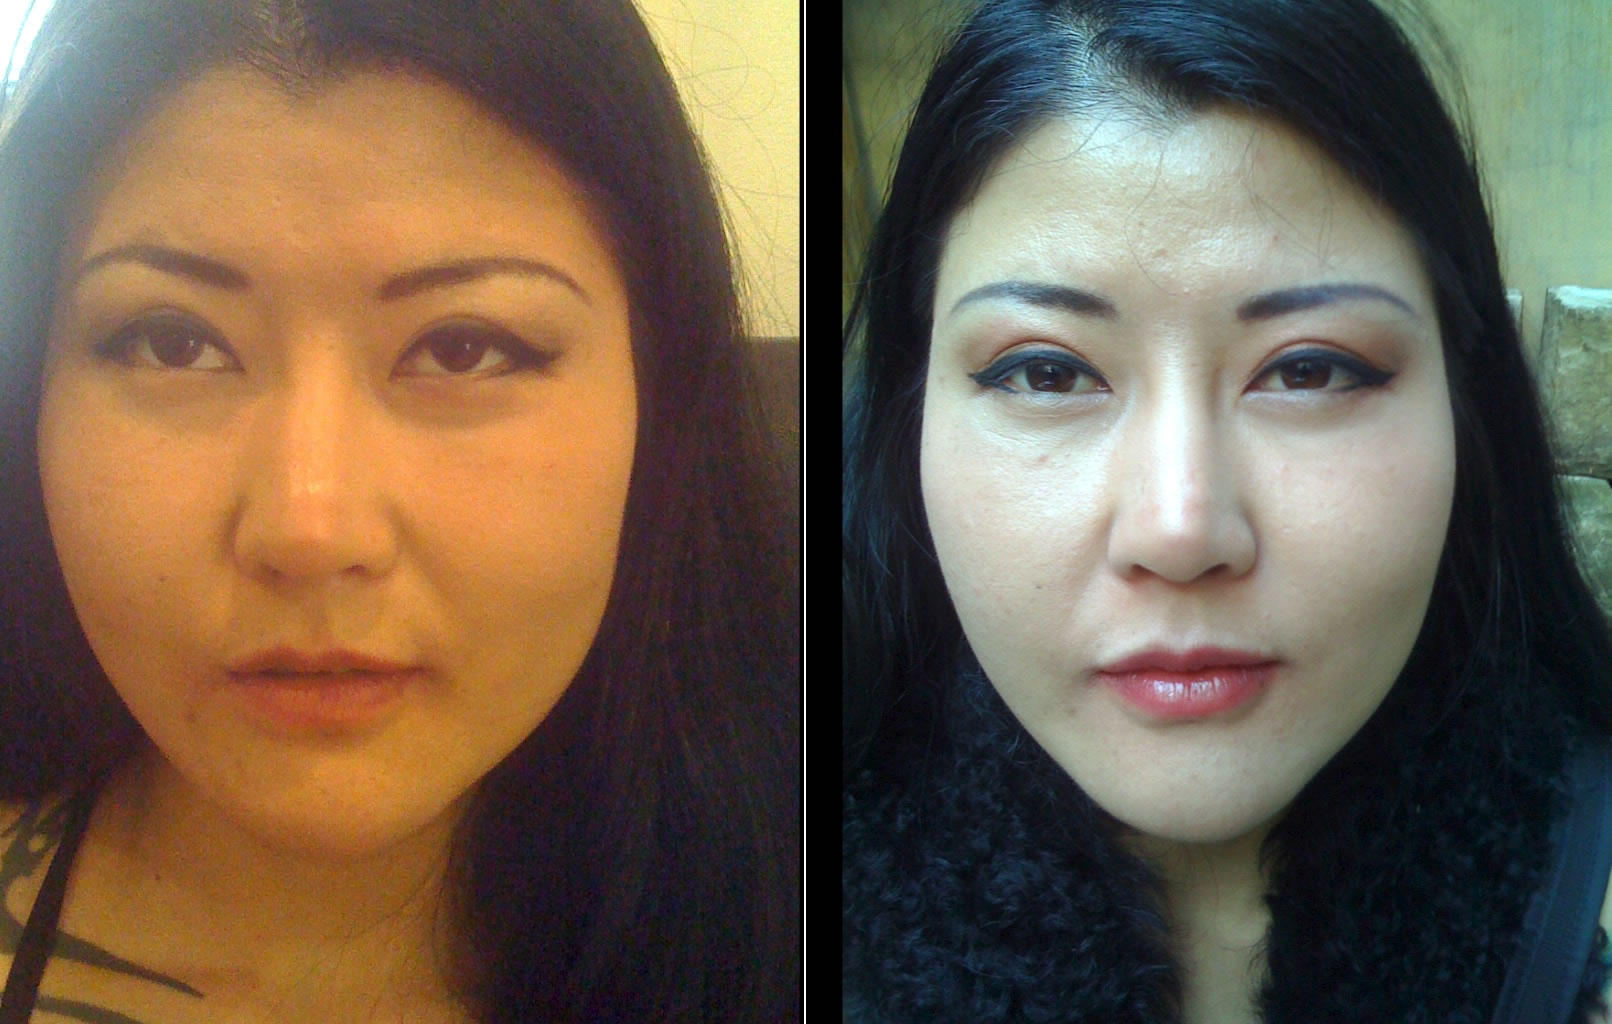 Jawline slimming using wrinkle injections *